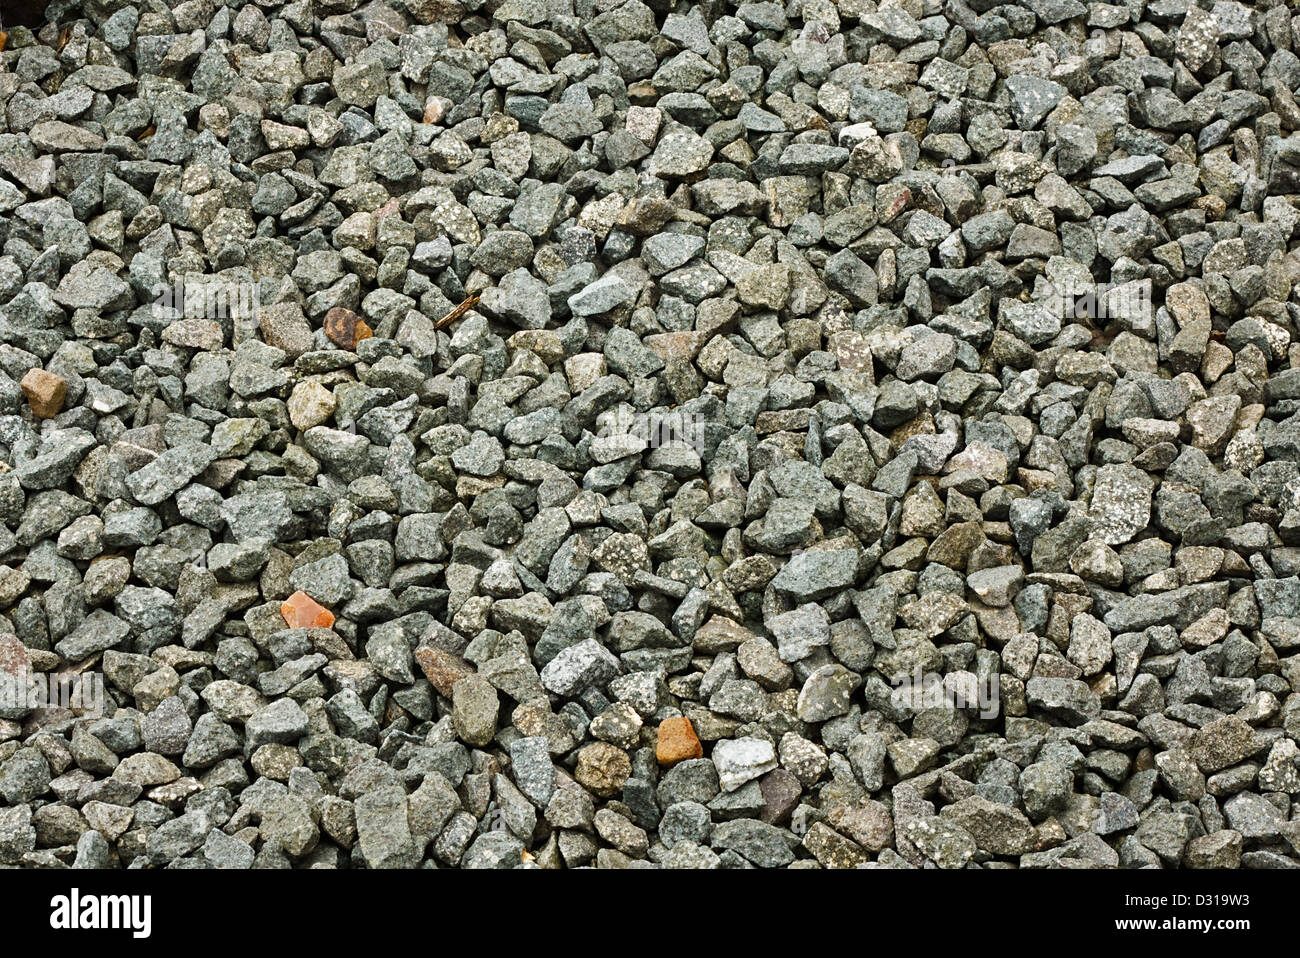 granite stone decorative chippings or aggregates used on driveways and walkways - Stock Image